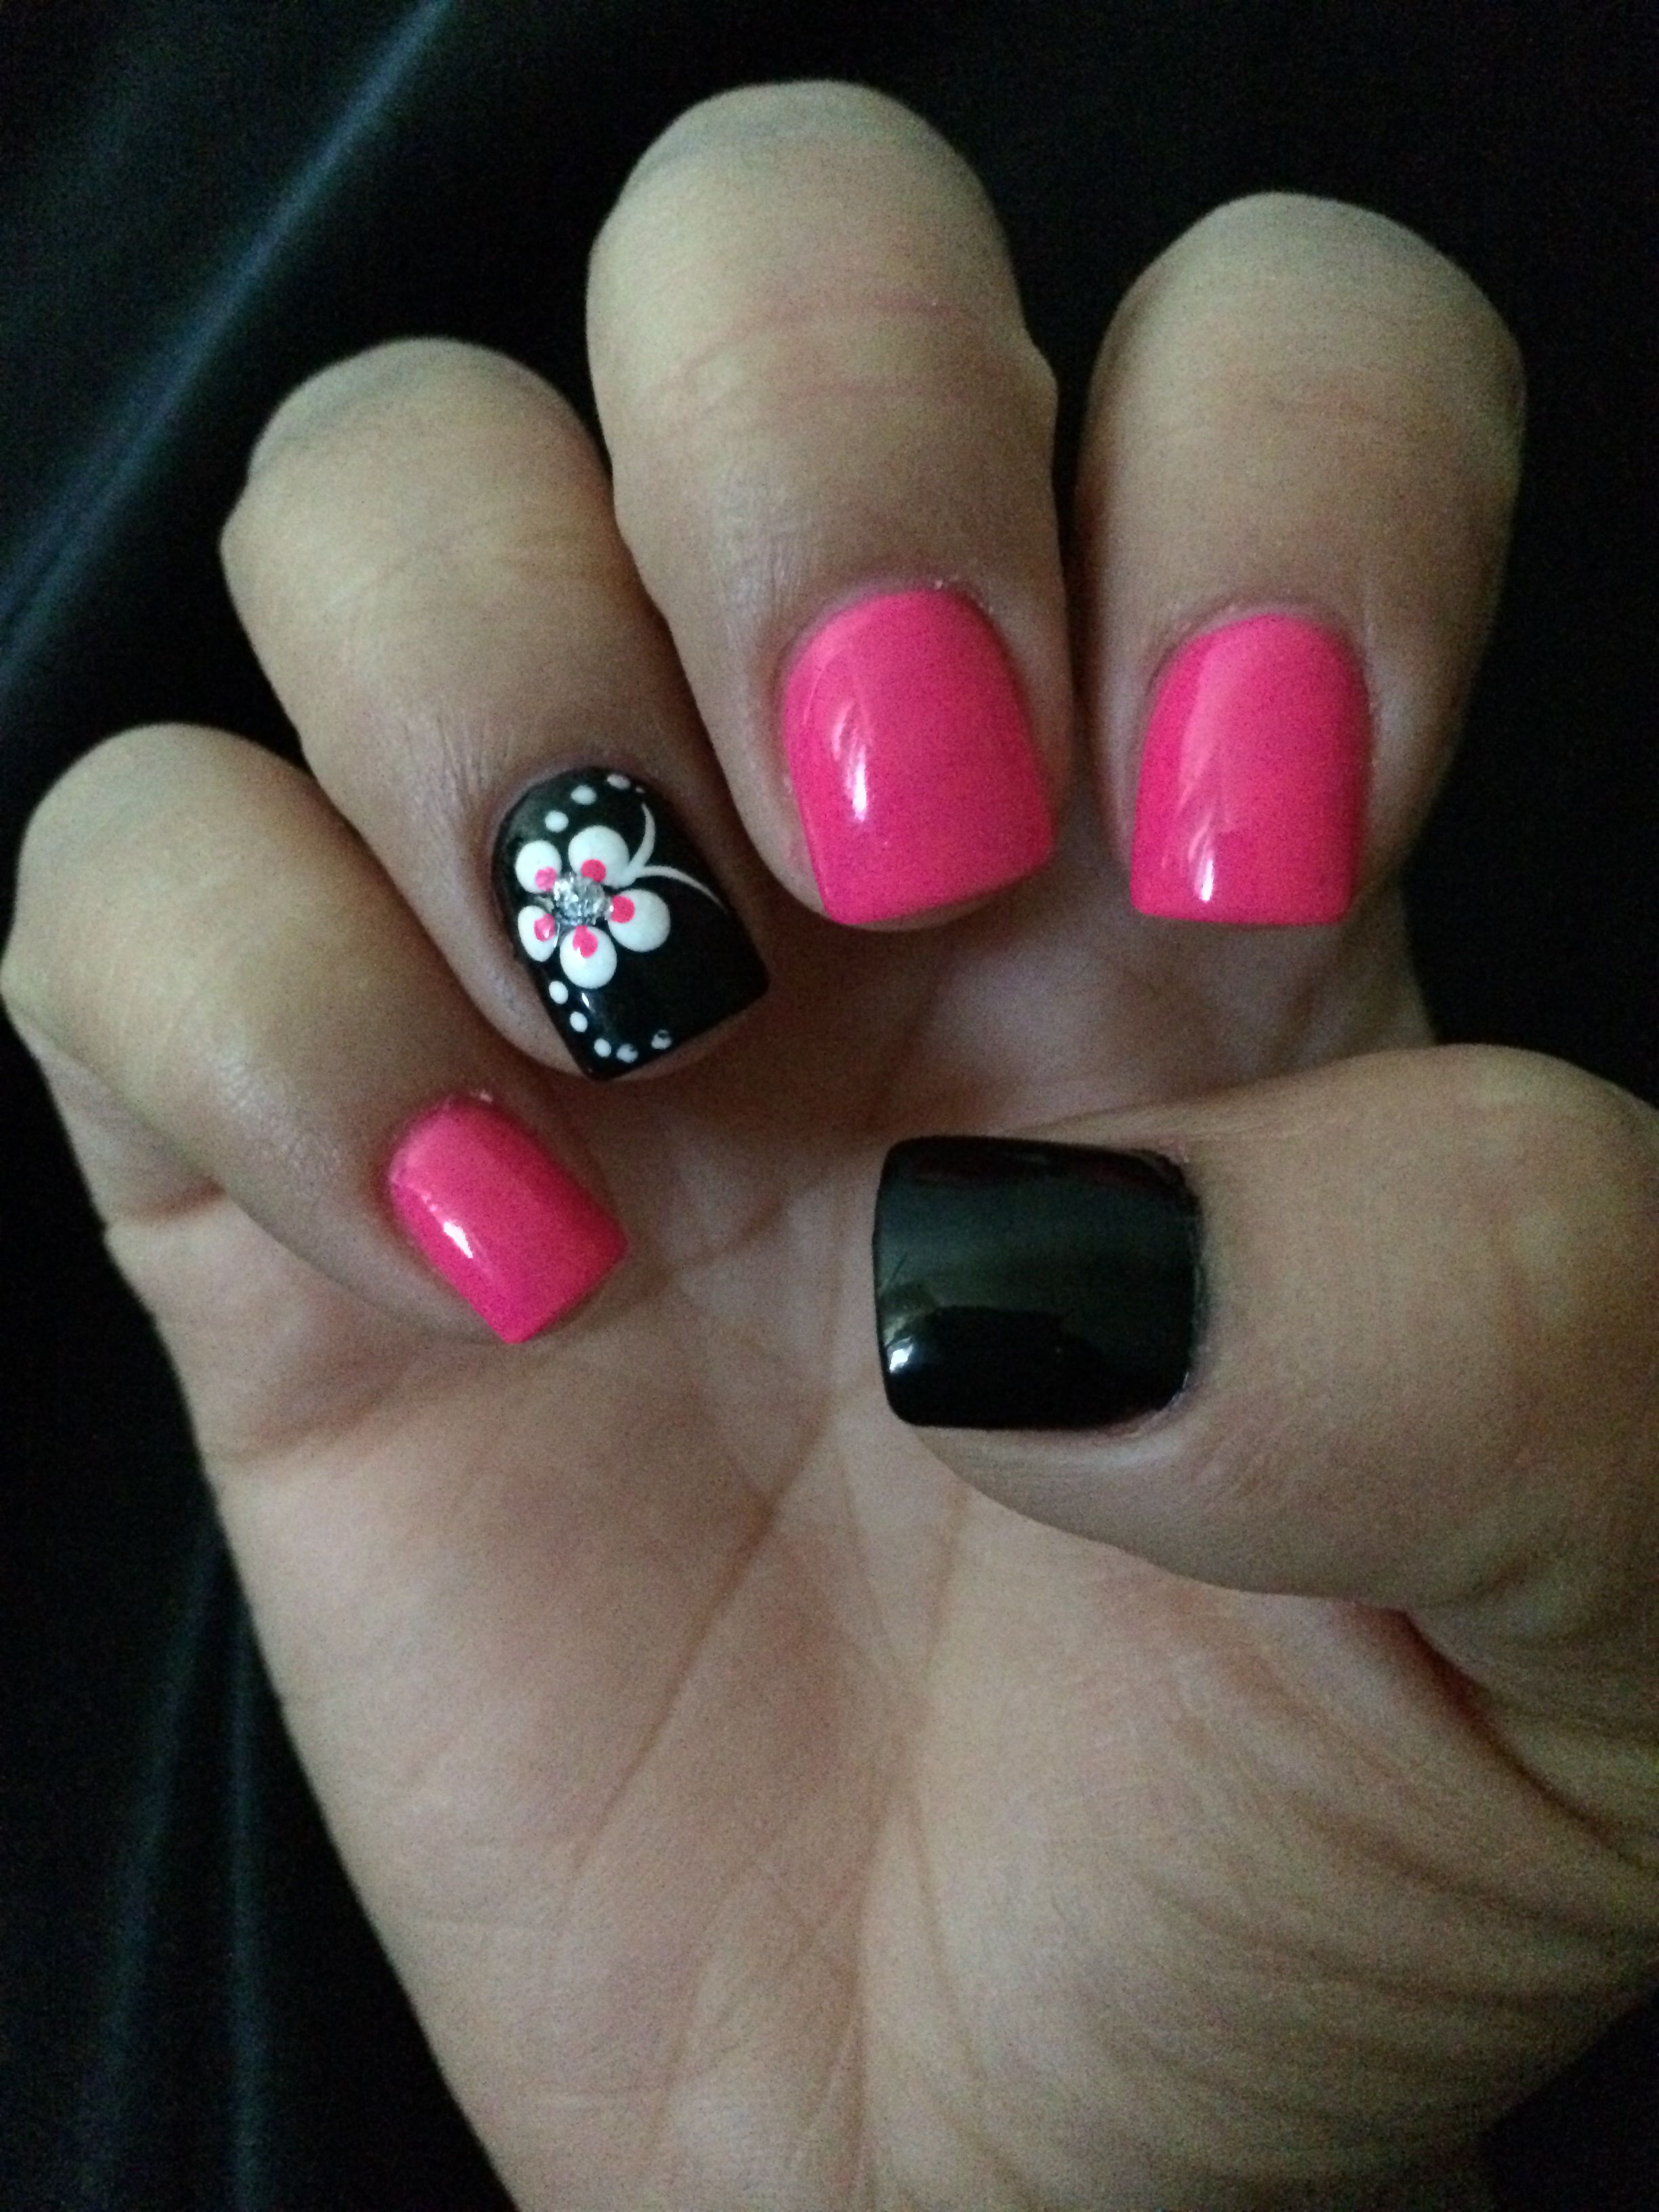 Nail ideas pink and black : Moved permanently